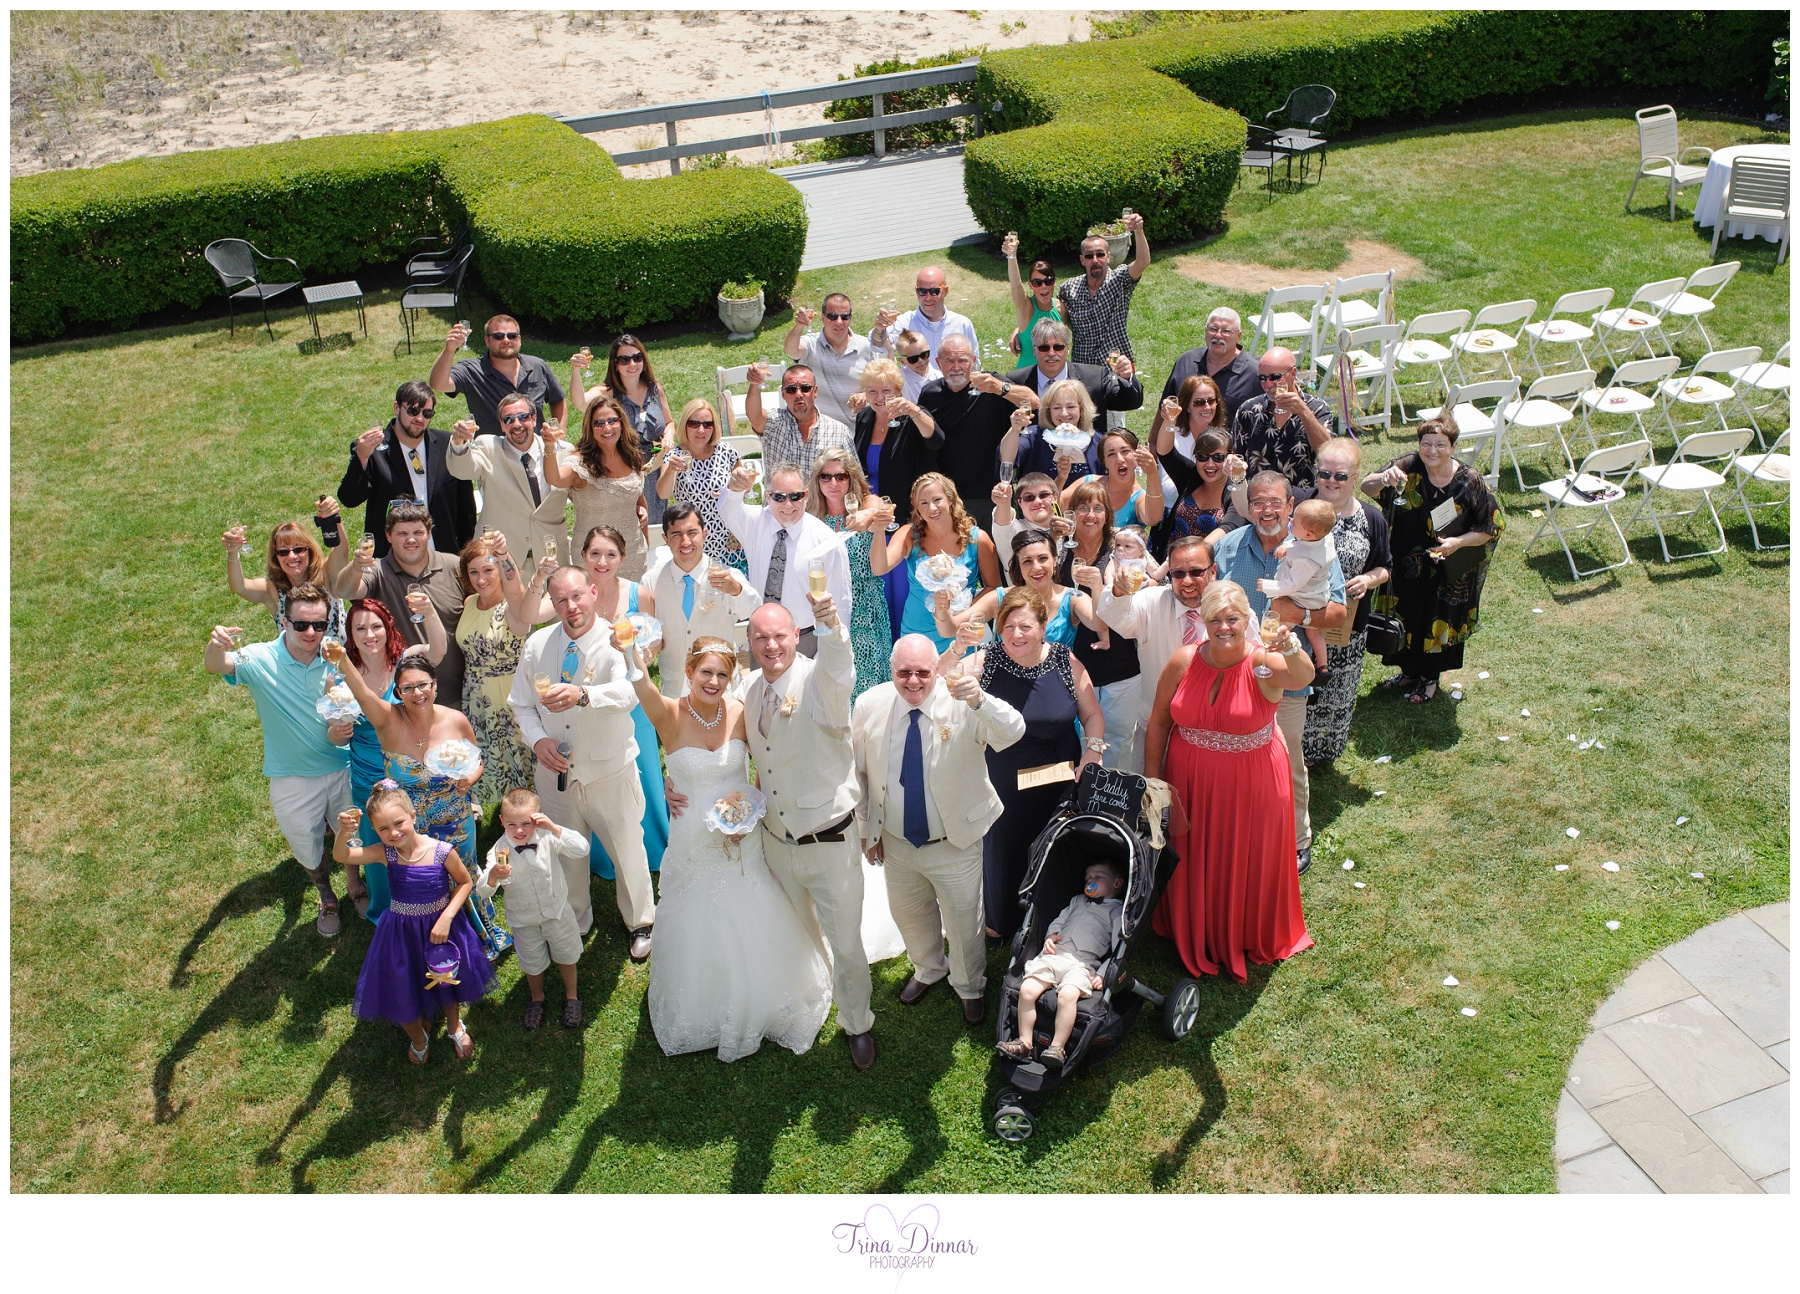 Wedding photographer at Joseph's by the Sea in Old Orchard Beach, Maine